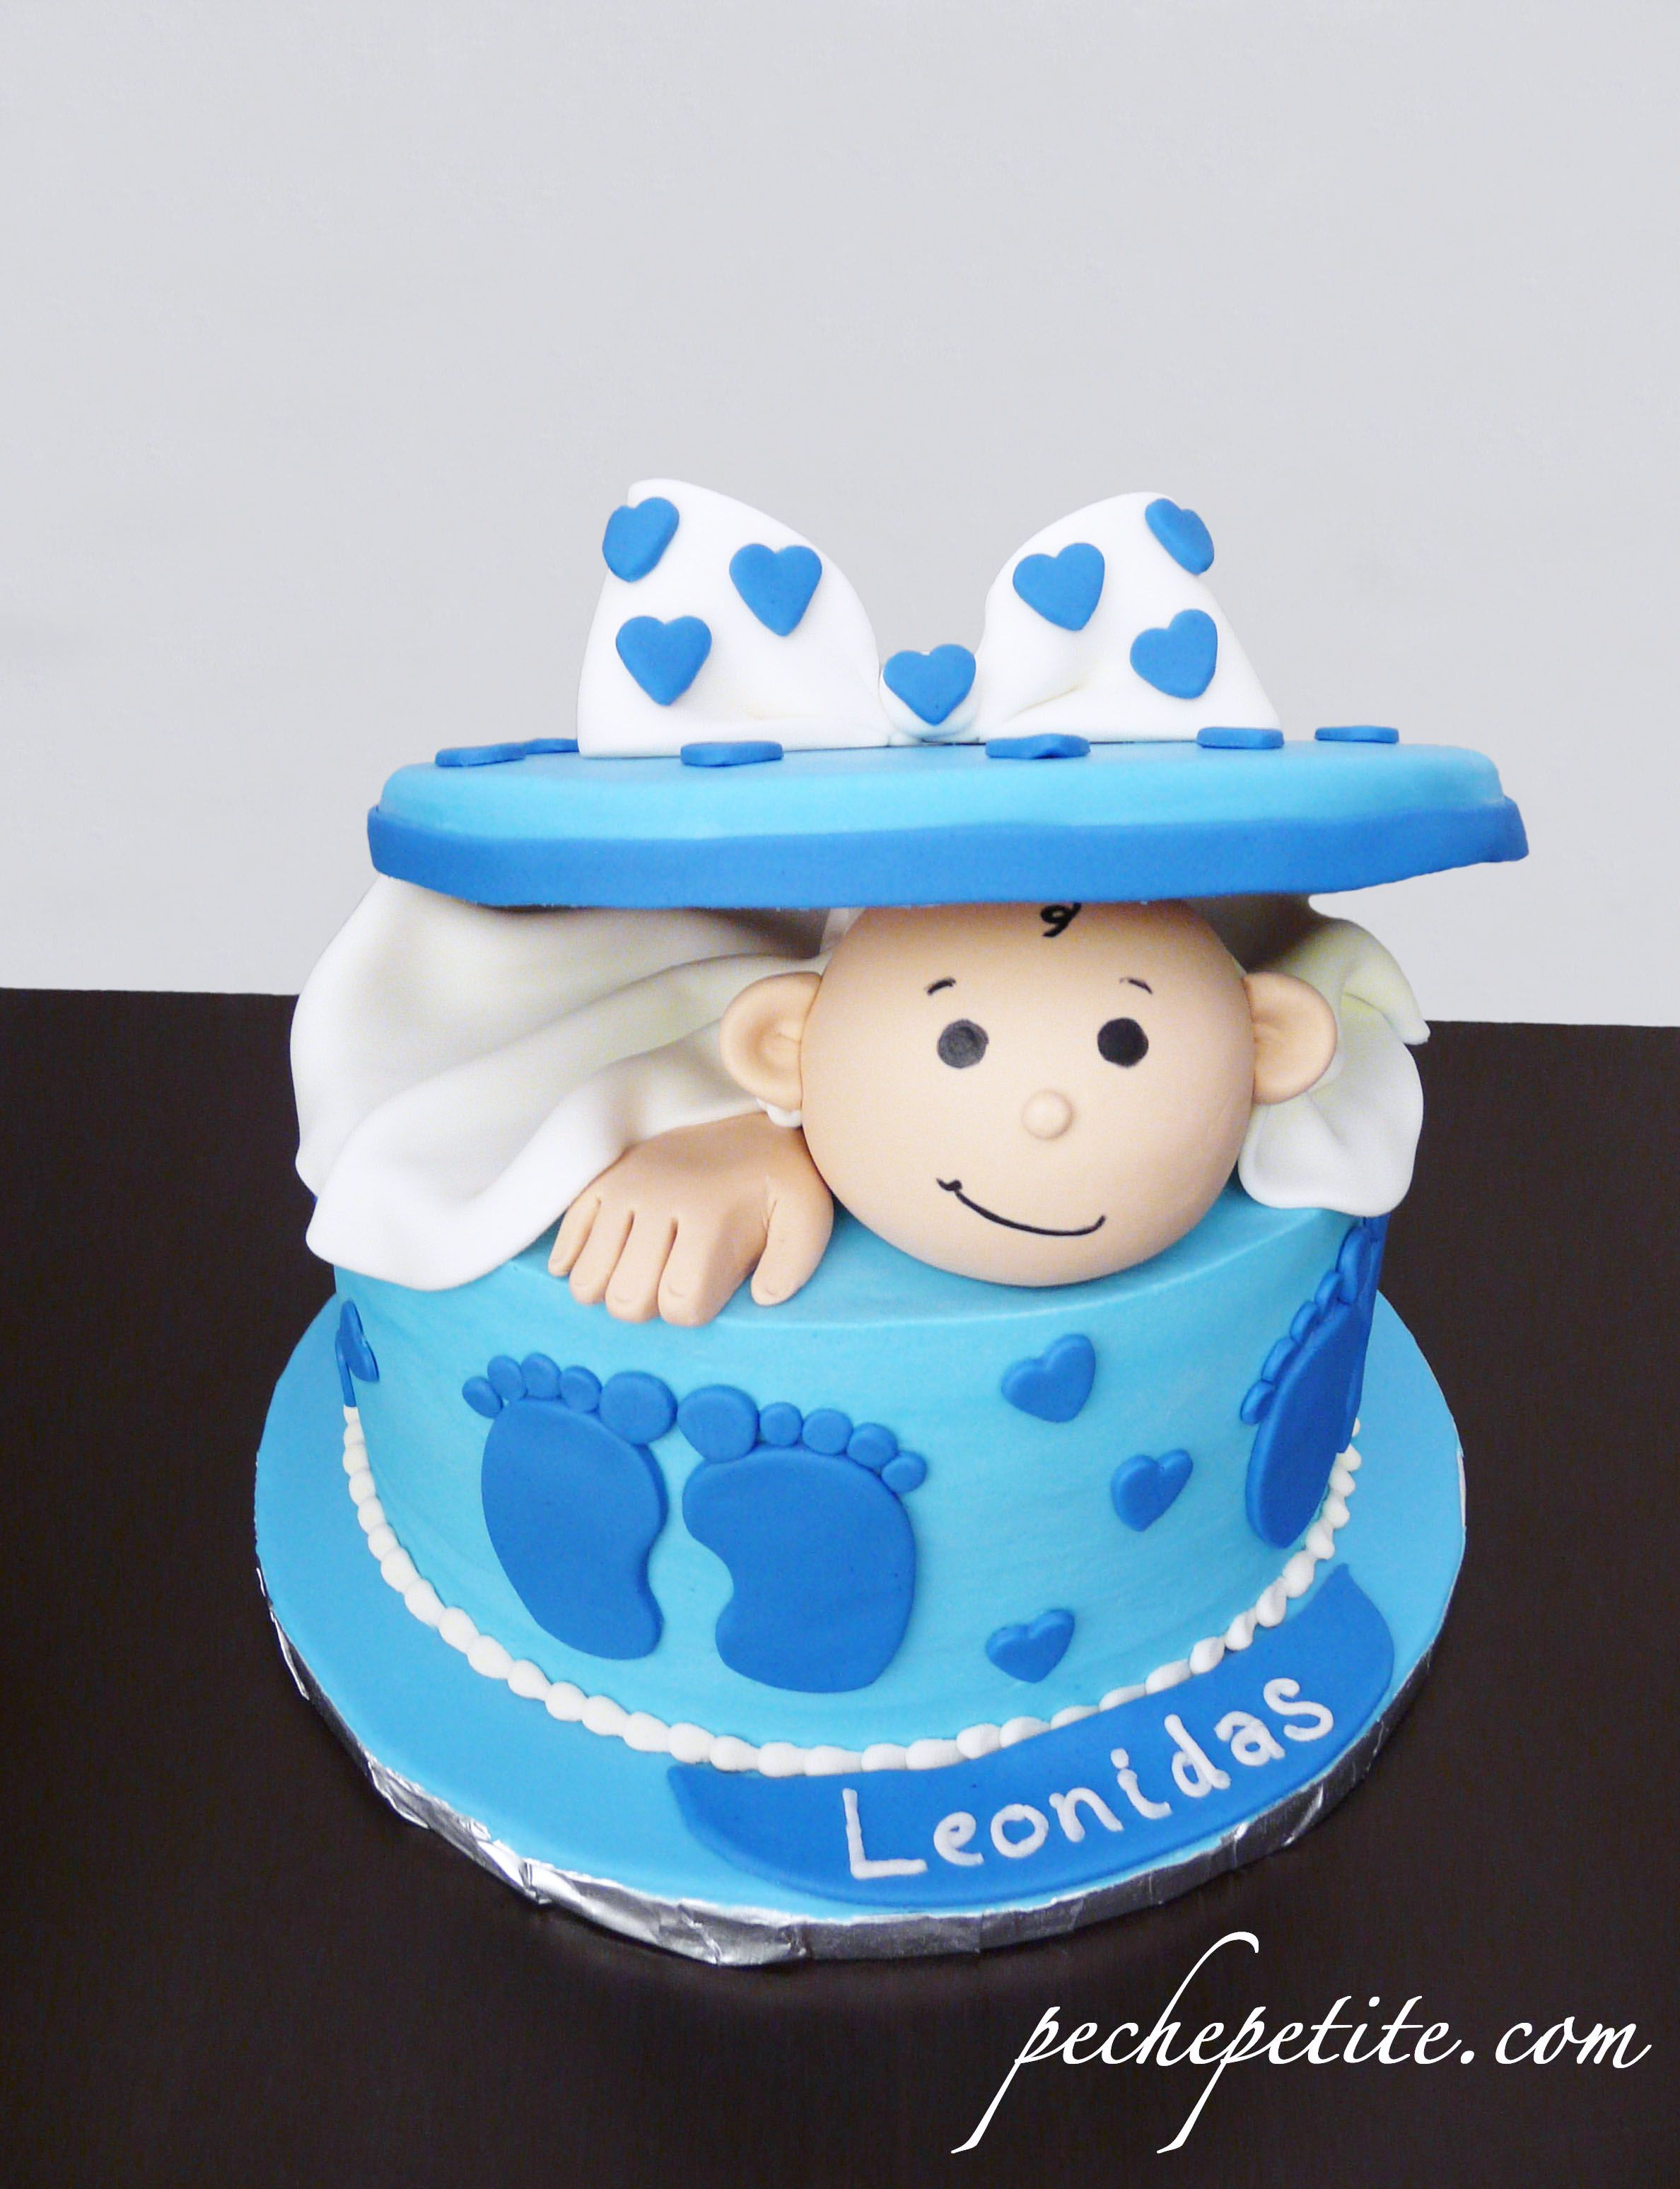 Surprise Its a baby present shower cake for a boy Pche Petite